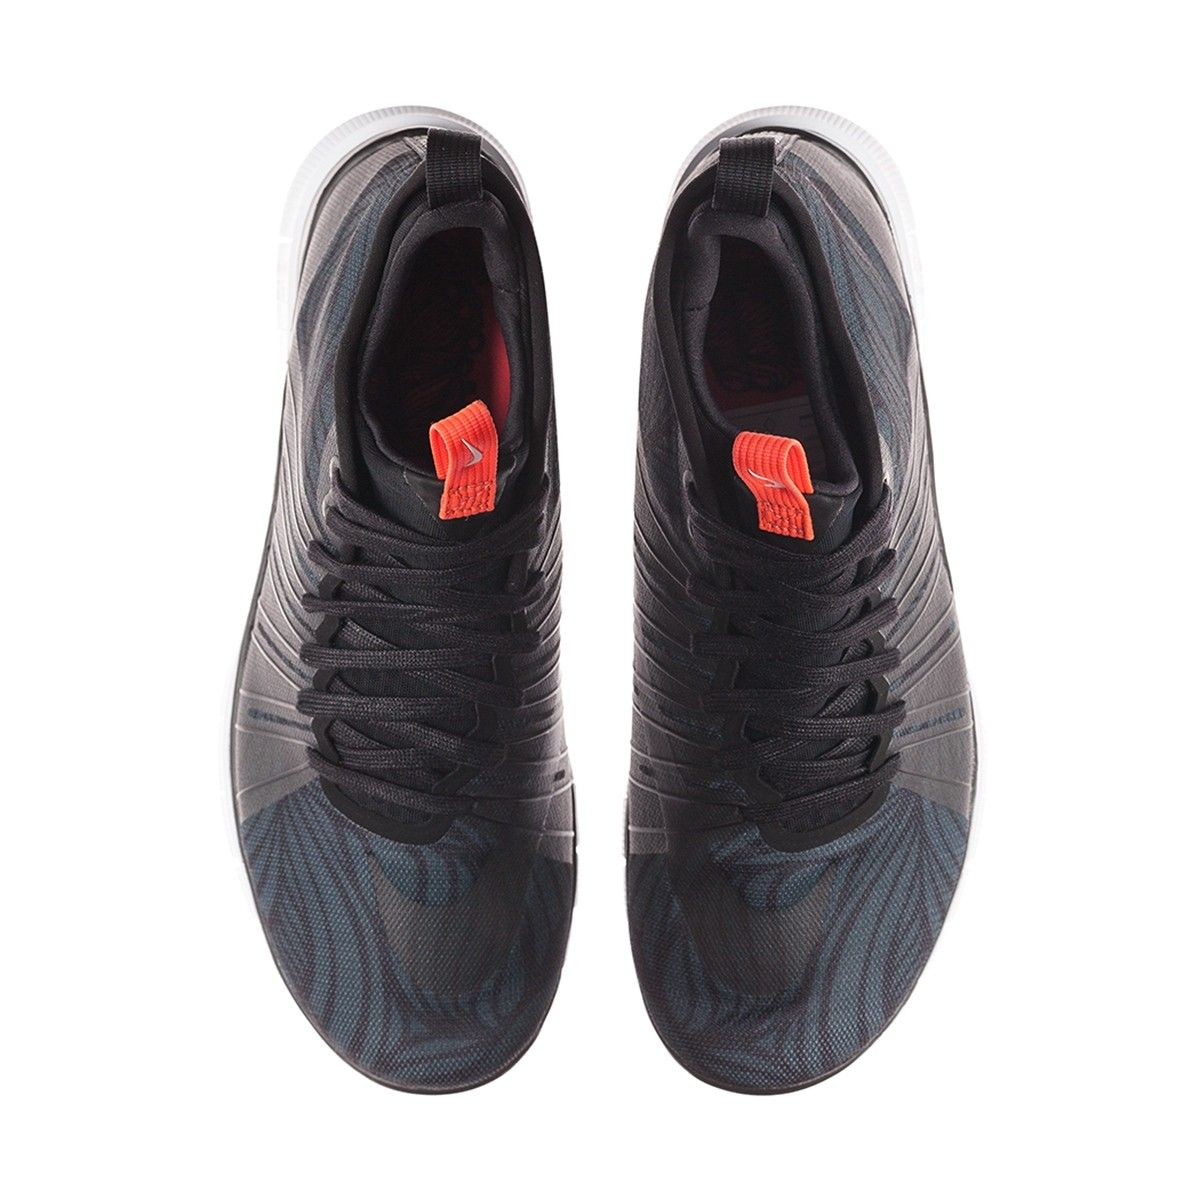 Nike F.C. Free Hypervenom 2 Sneakers Black / White / Total Crimson / Black  from the Spring Summer 2016 Collection